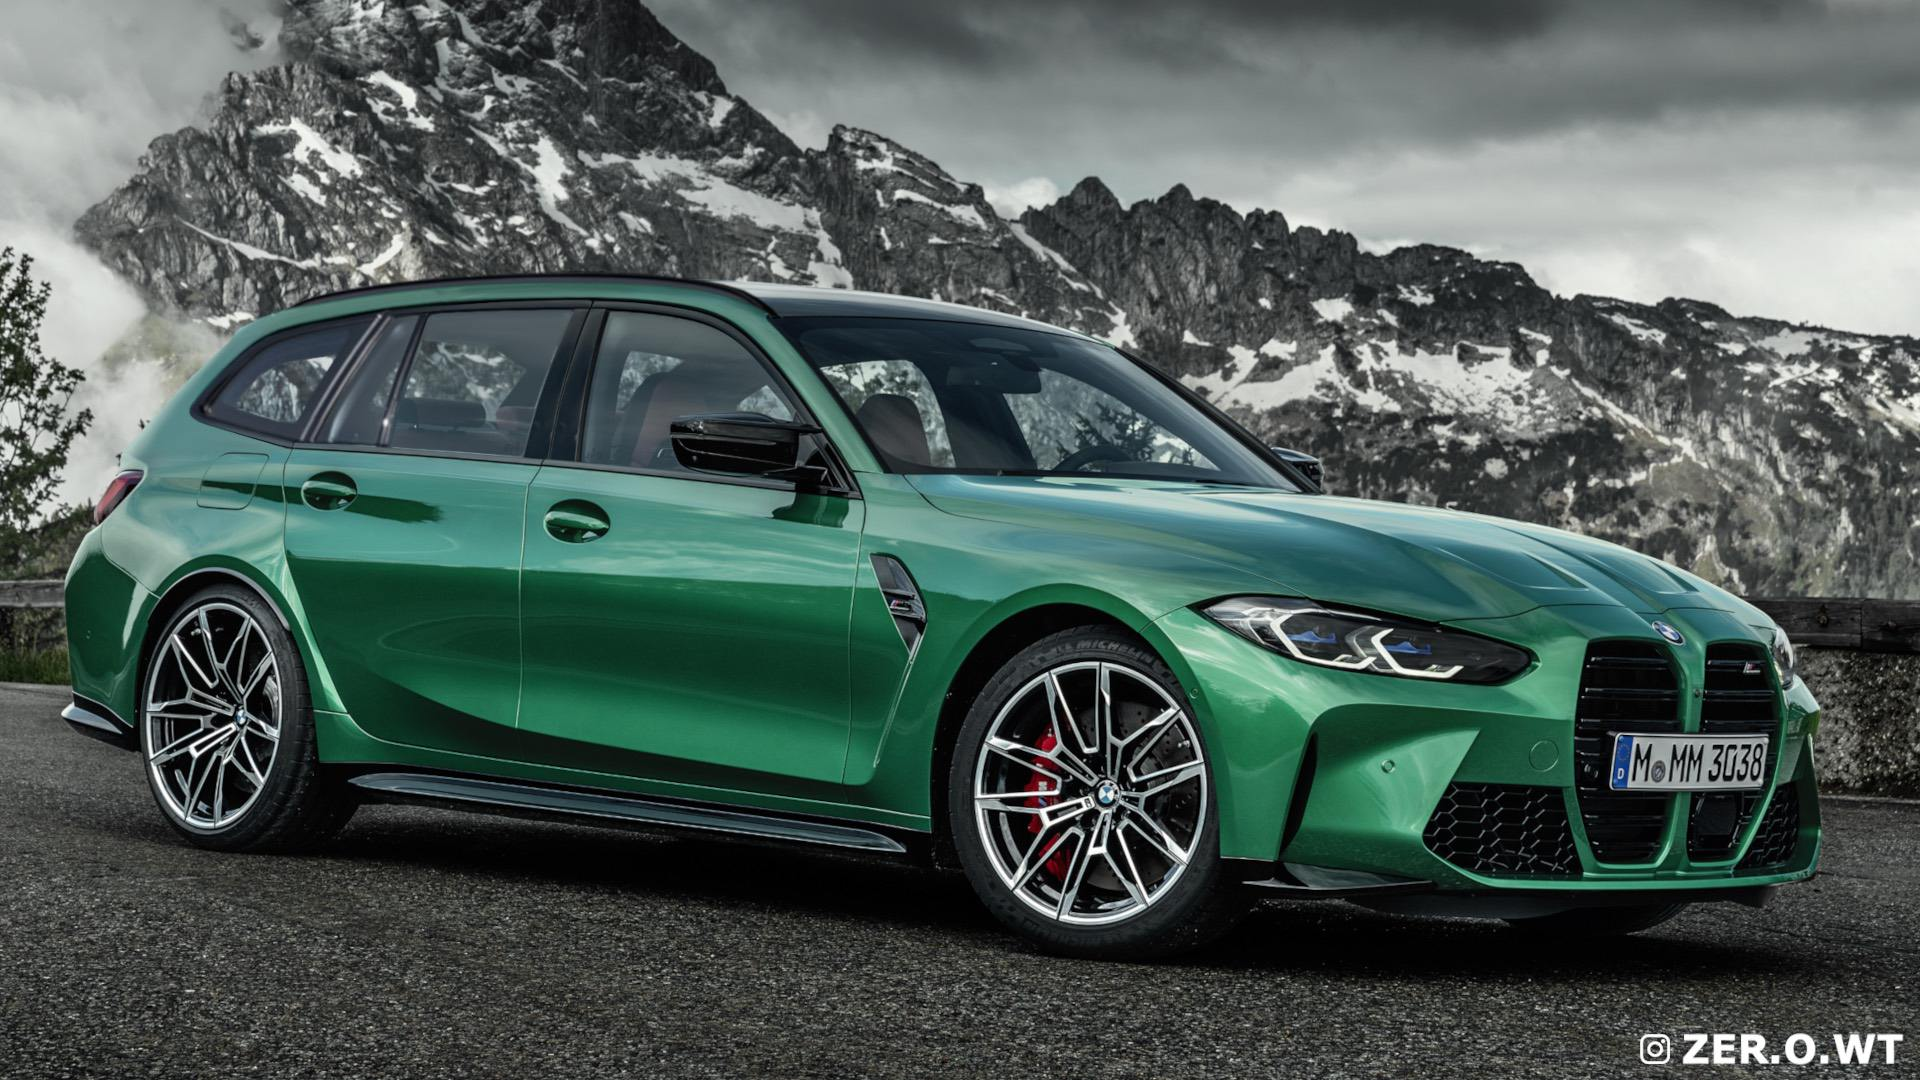 the future bmw m3 touring gets new renderings after the m3 unveil mimic news the future bmw m3 touring gets new